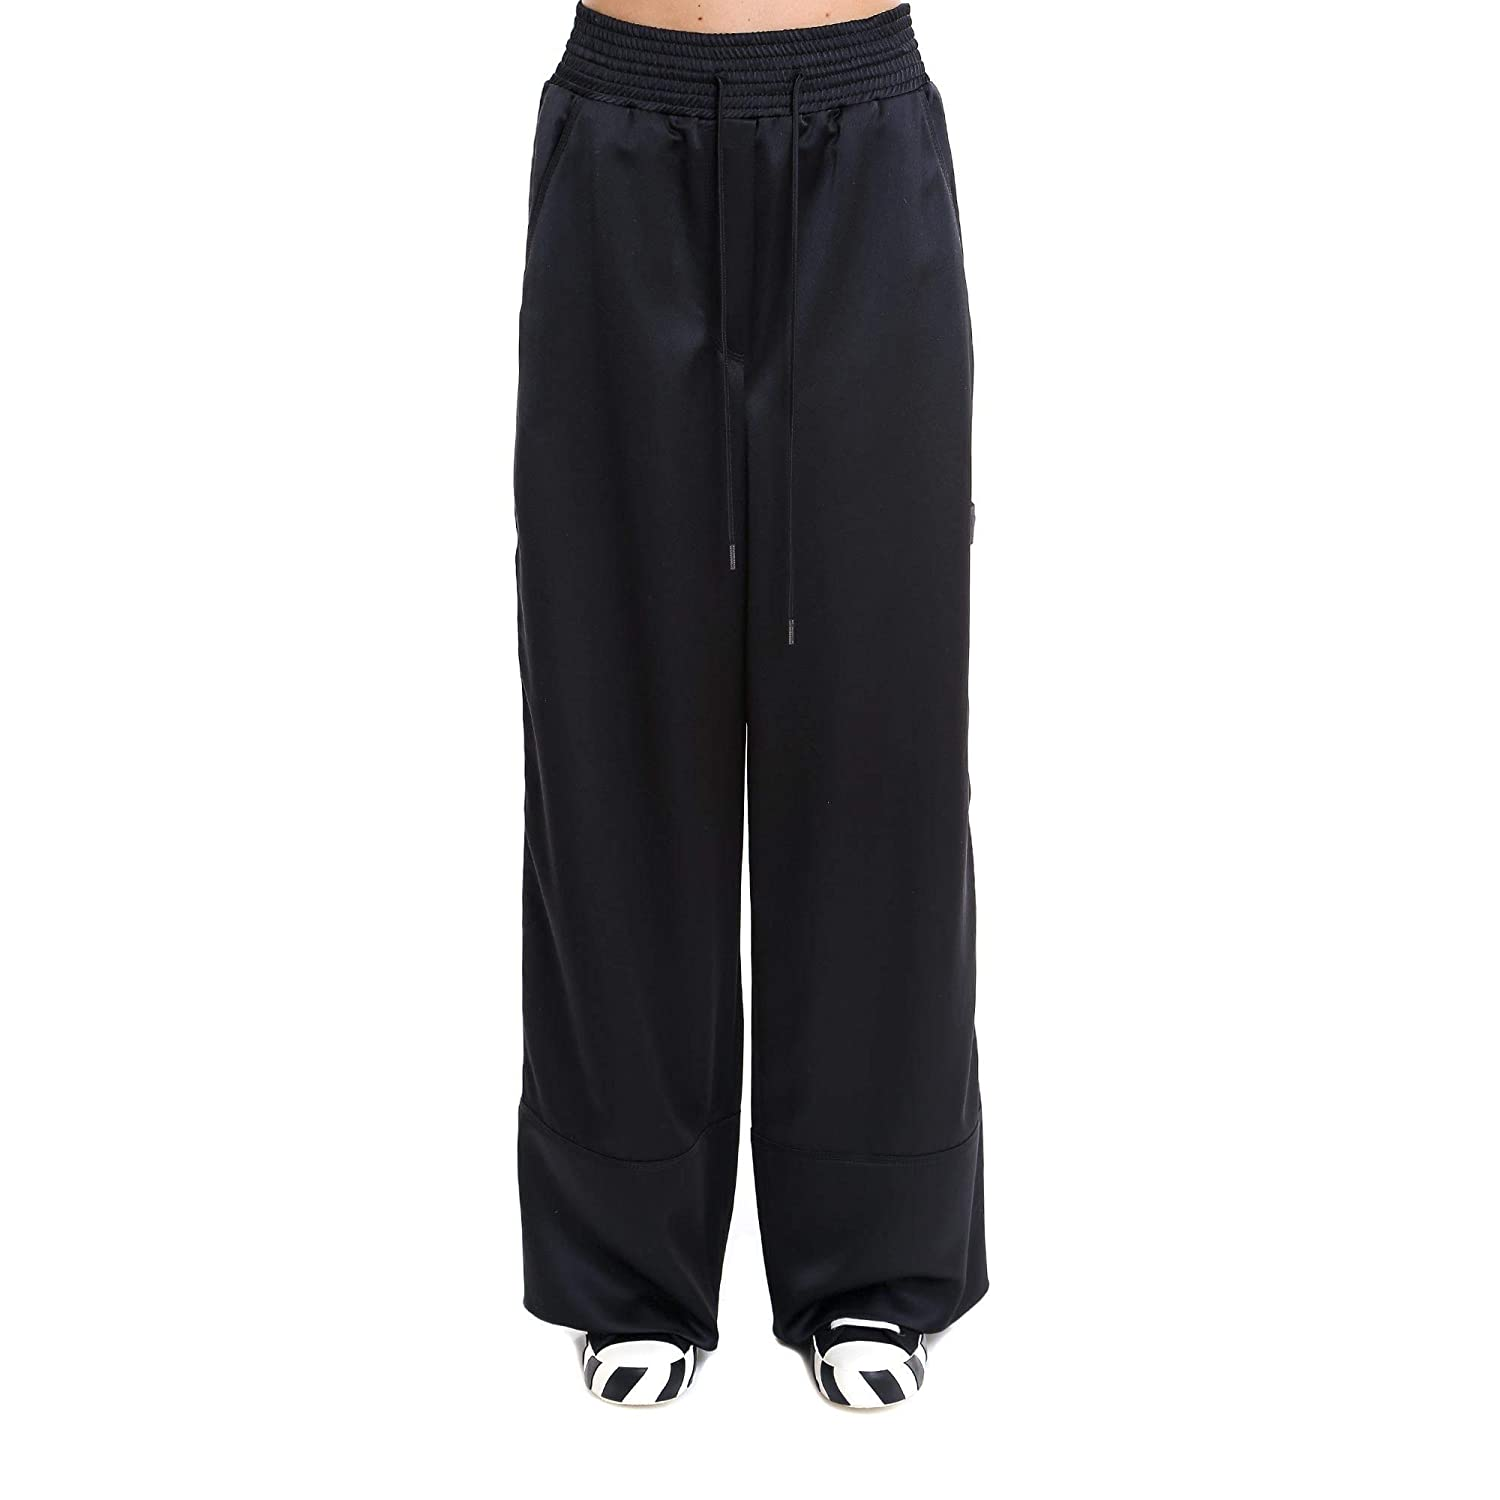 OffWhite Women's OWCF002R187480271010 Black Polyester Pants